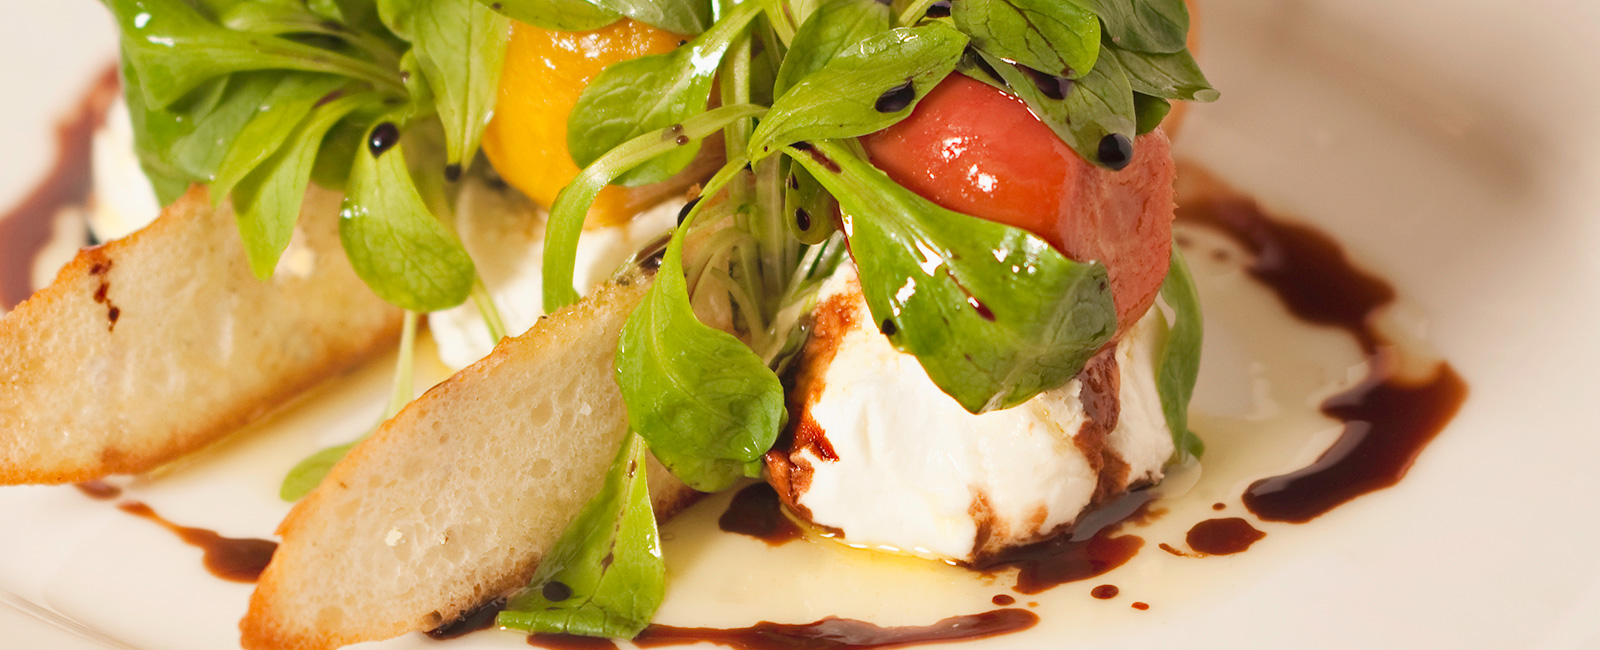 Fresh mozzarella with heirloom tomatoes with balsamic drizzle